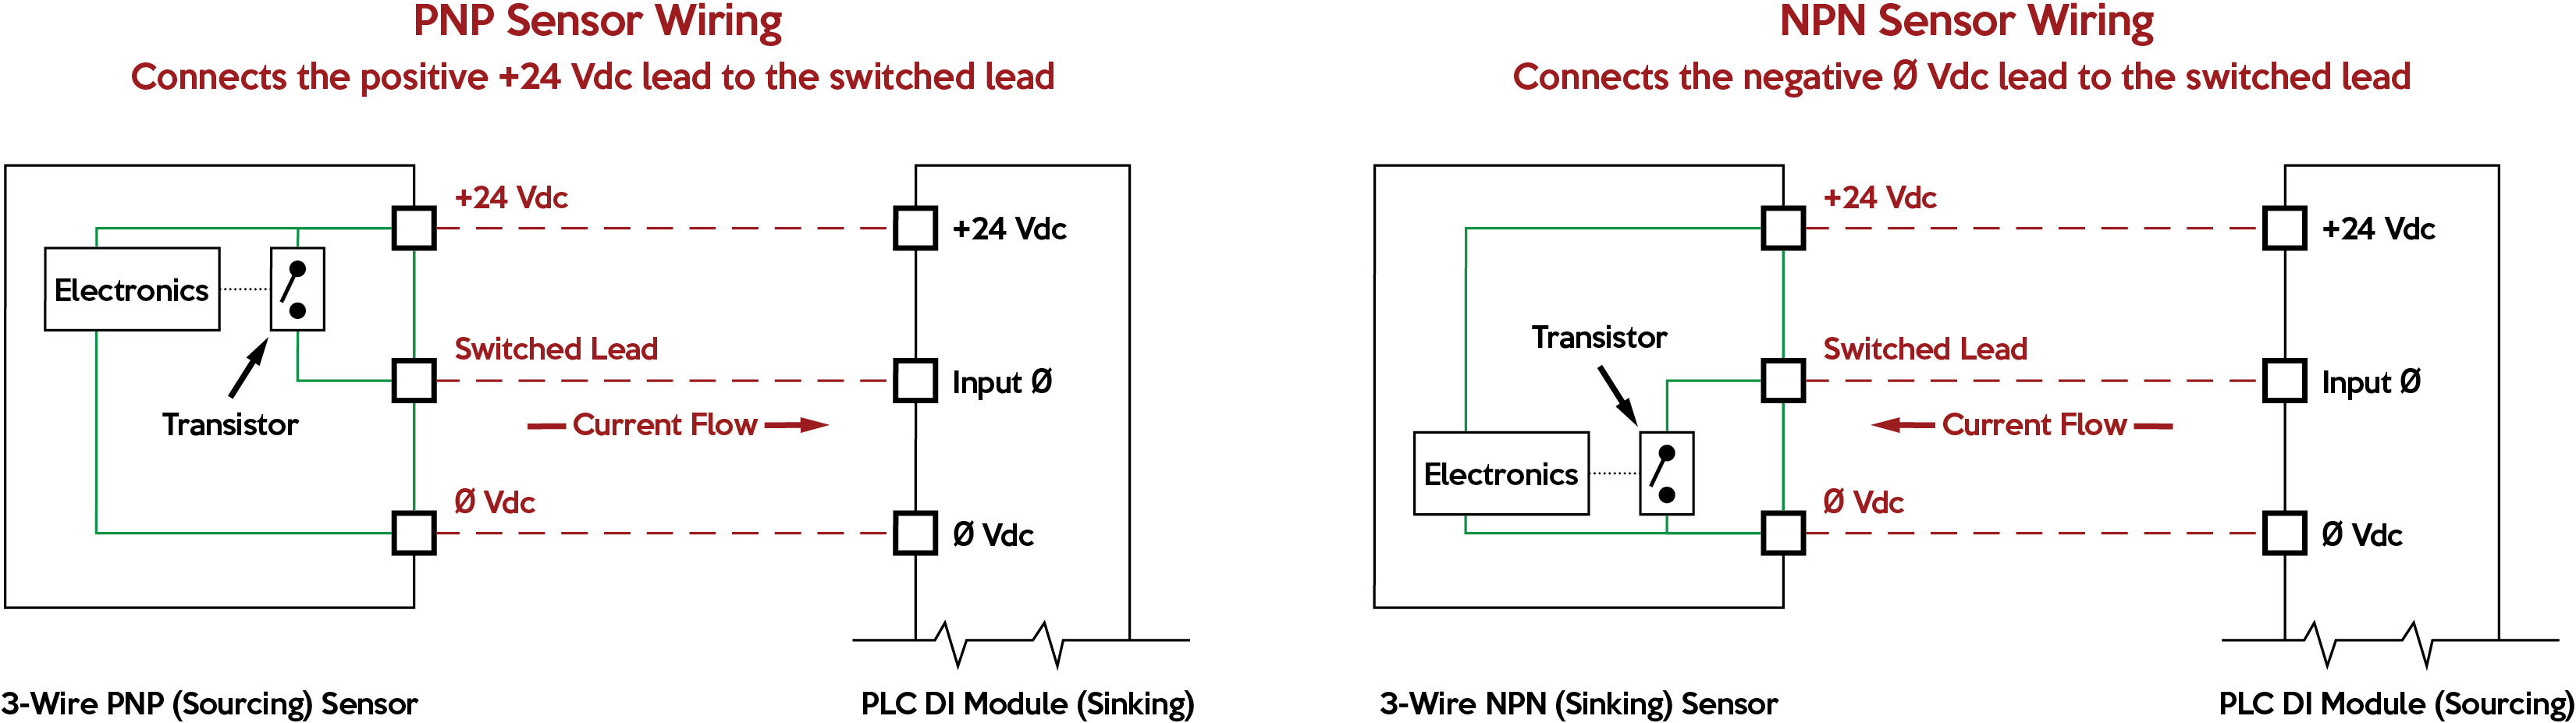 PNP and NPN field devices connected to DI points